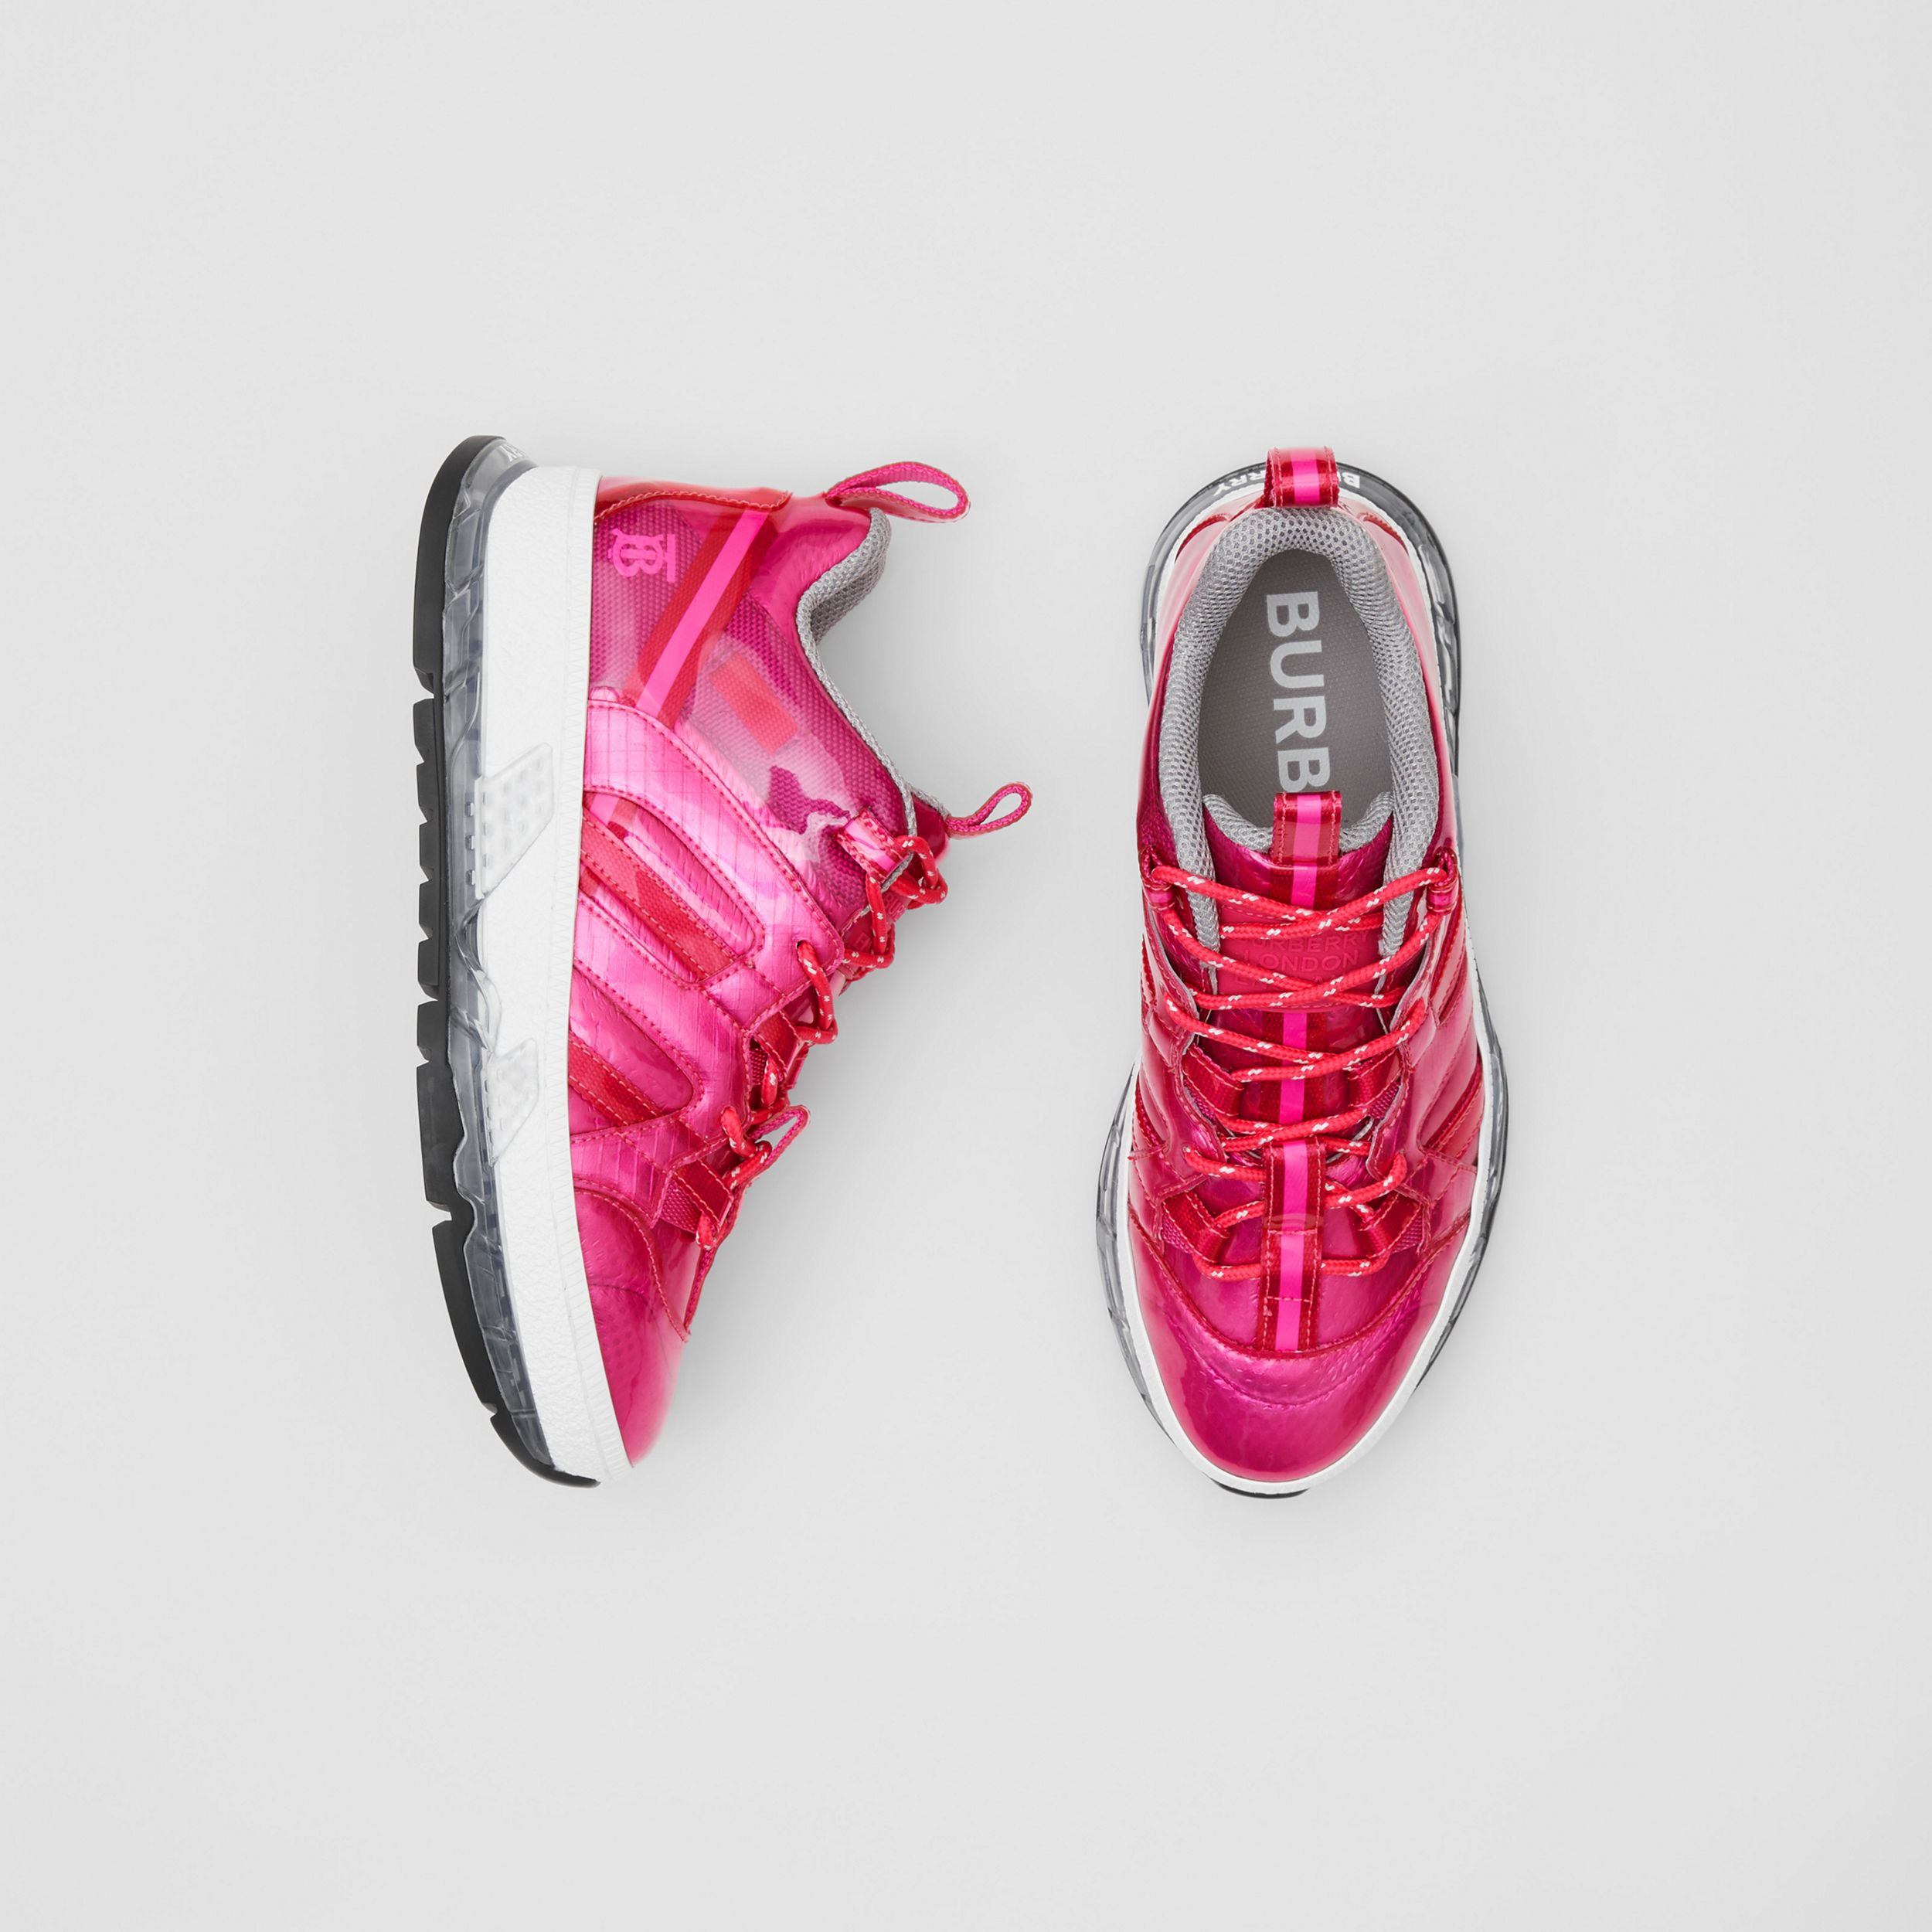 Vinyl and Nylon Union Sneakers in Fuchsia - Women | Burberry - 1